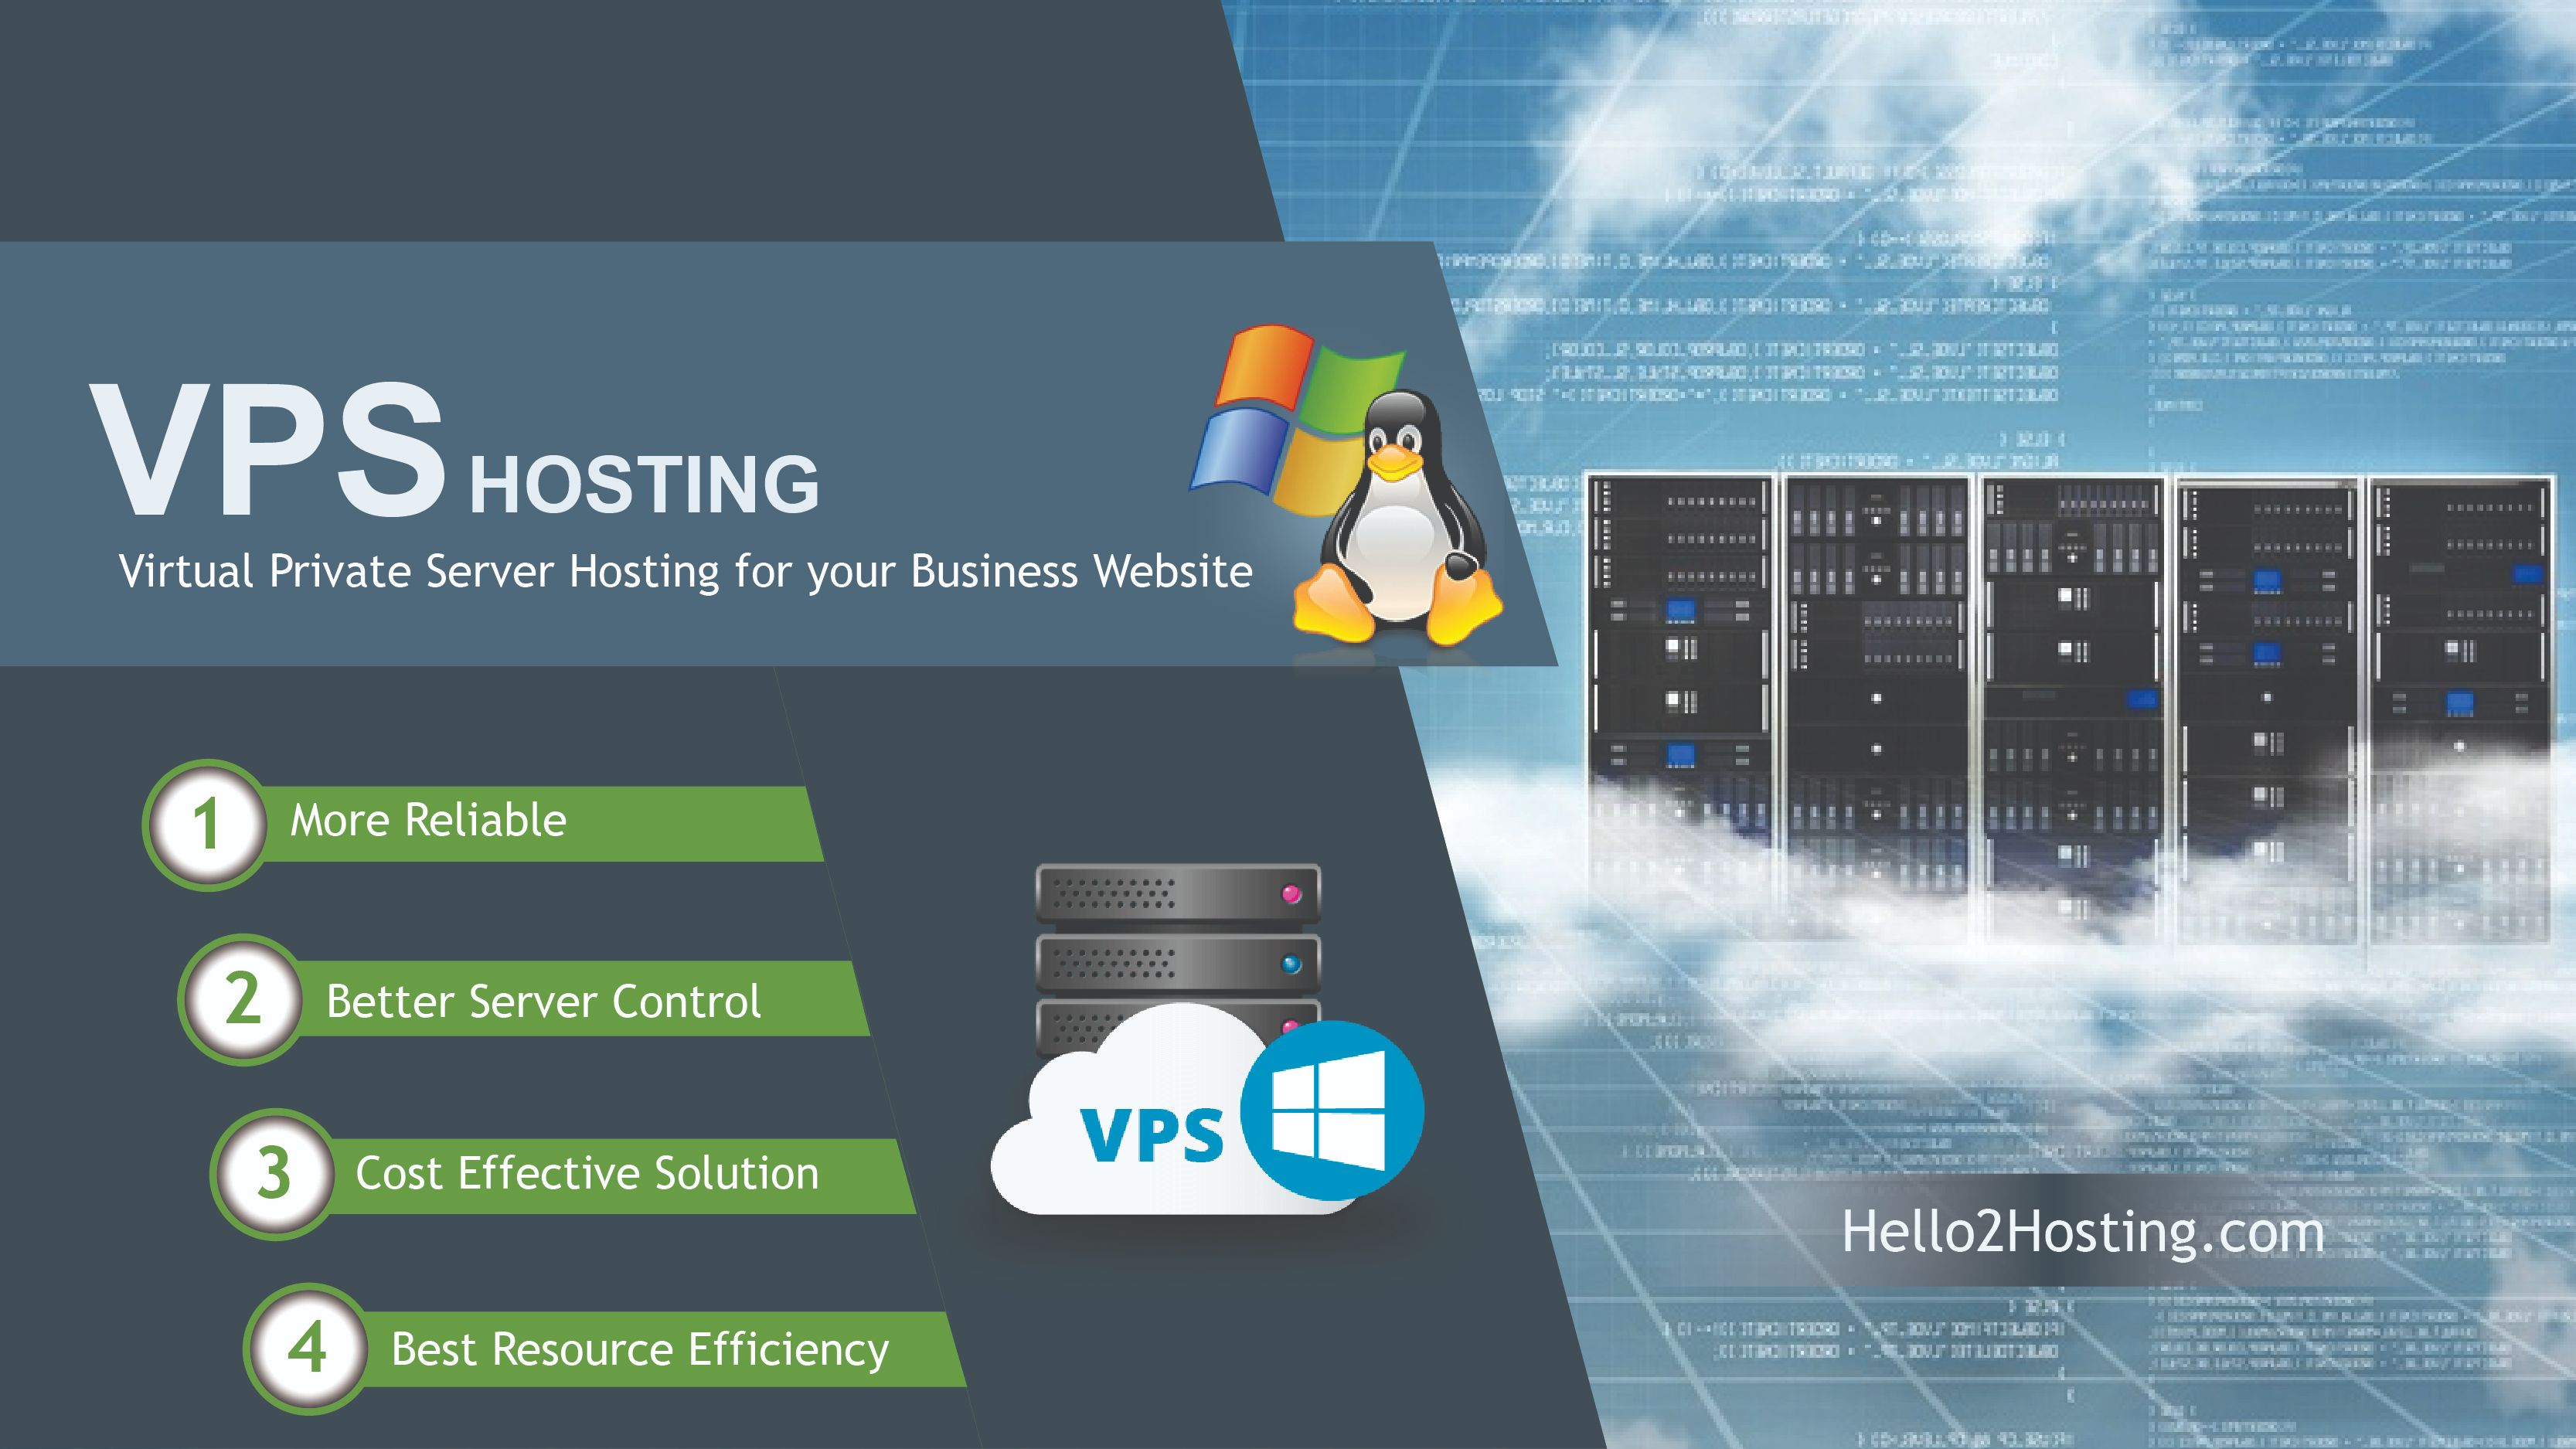 Top 5 Benefits of Virtual Private Server Hosting for your Business Website